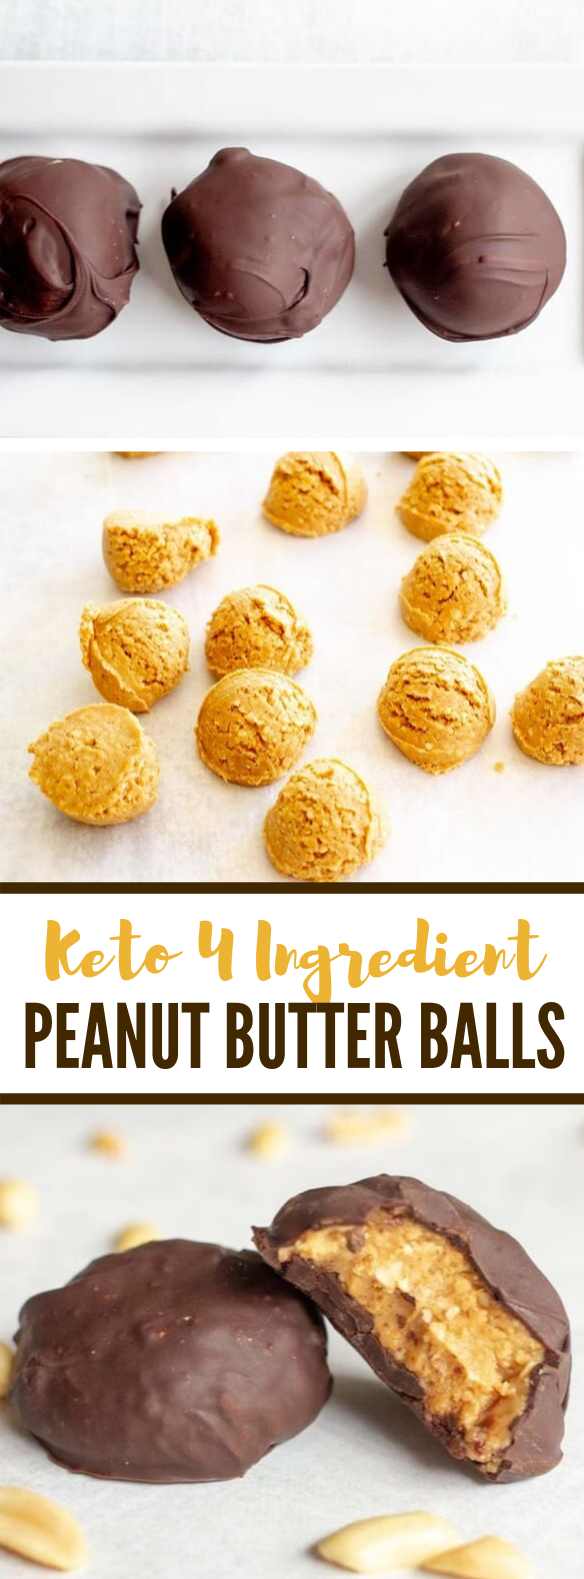 HEALTHY PEANUT BUTTER BALLS EASY KETO LOW CARB #healthydesserts #diet